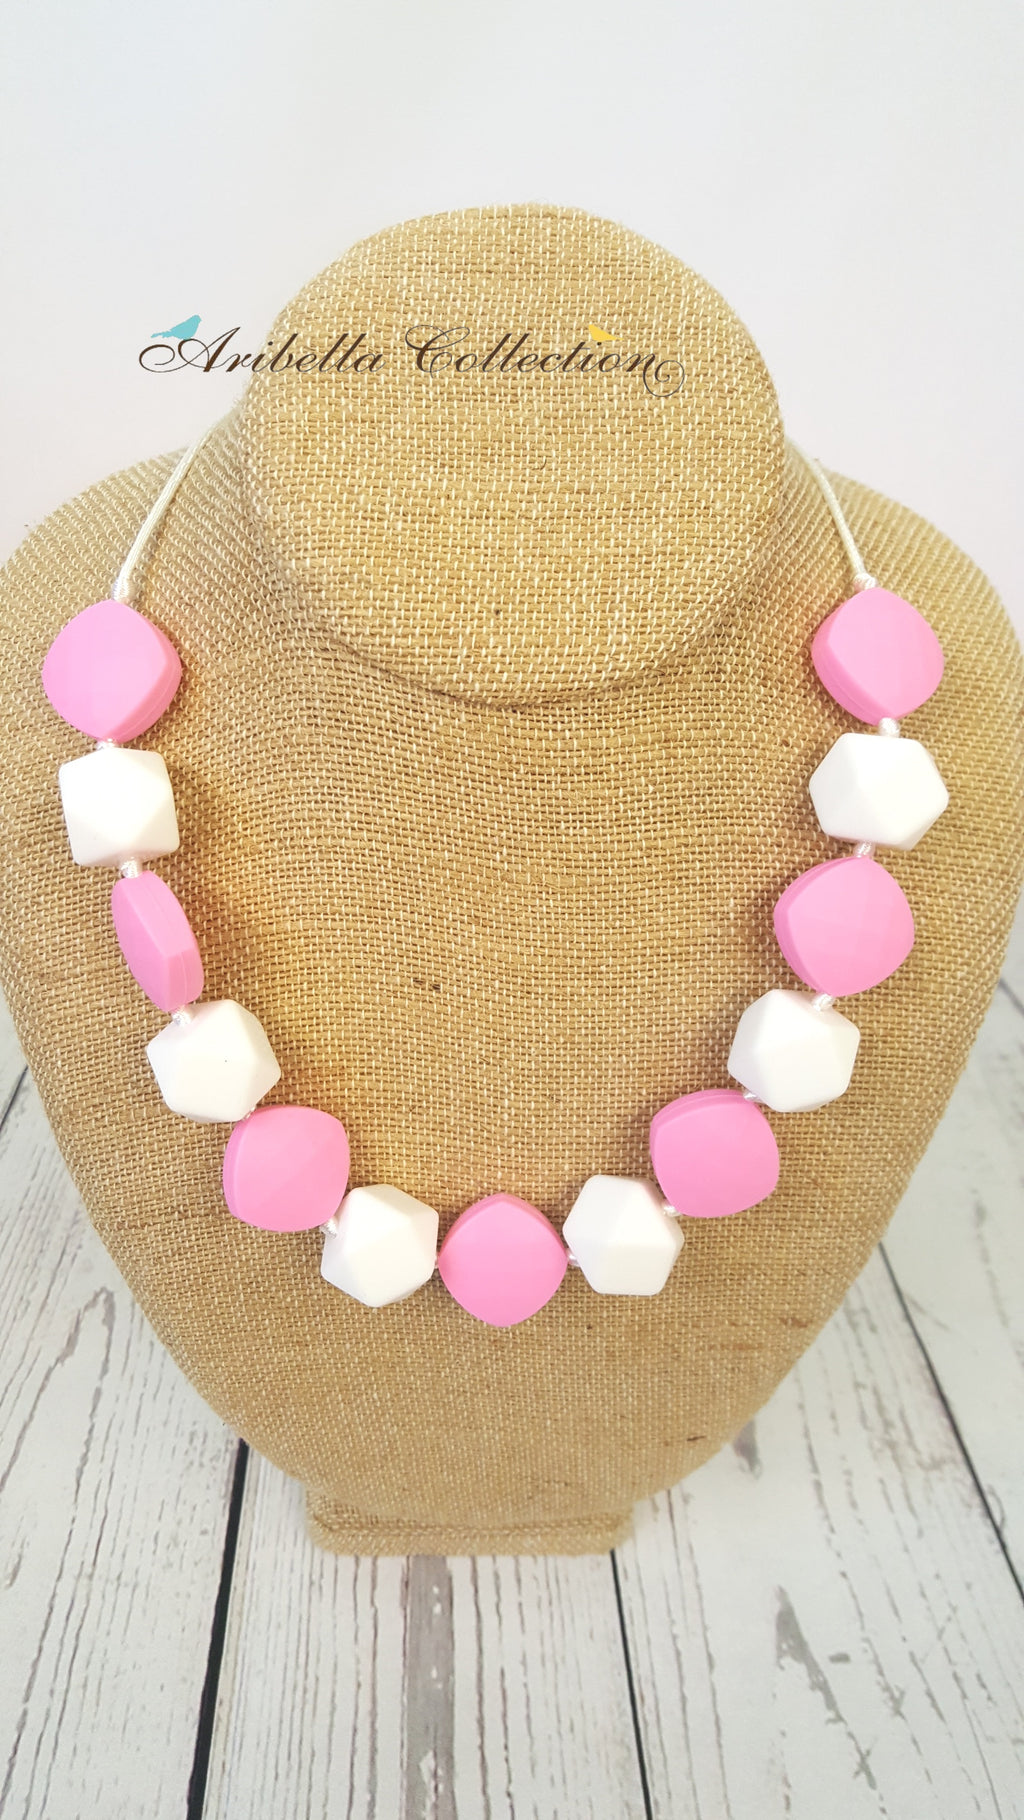 Silicone Necklace - Pink/White - Aribella Collection